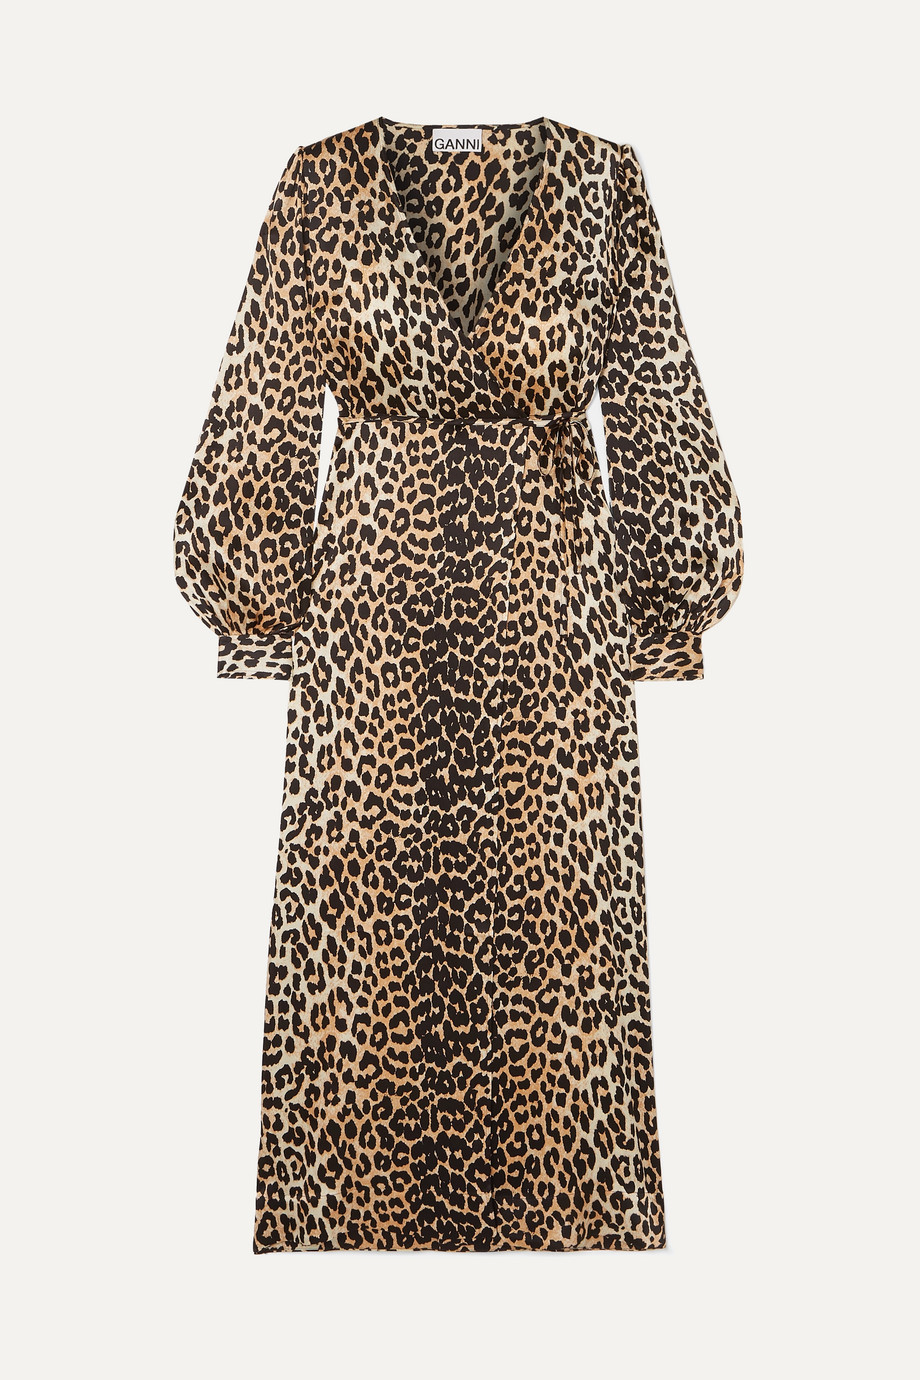 GANNI Leopard-print silk-blend satin wrap dress